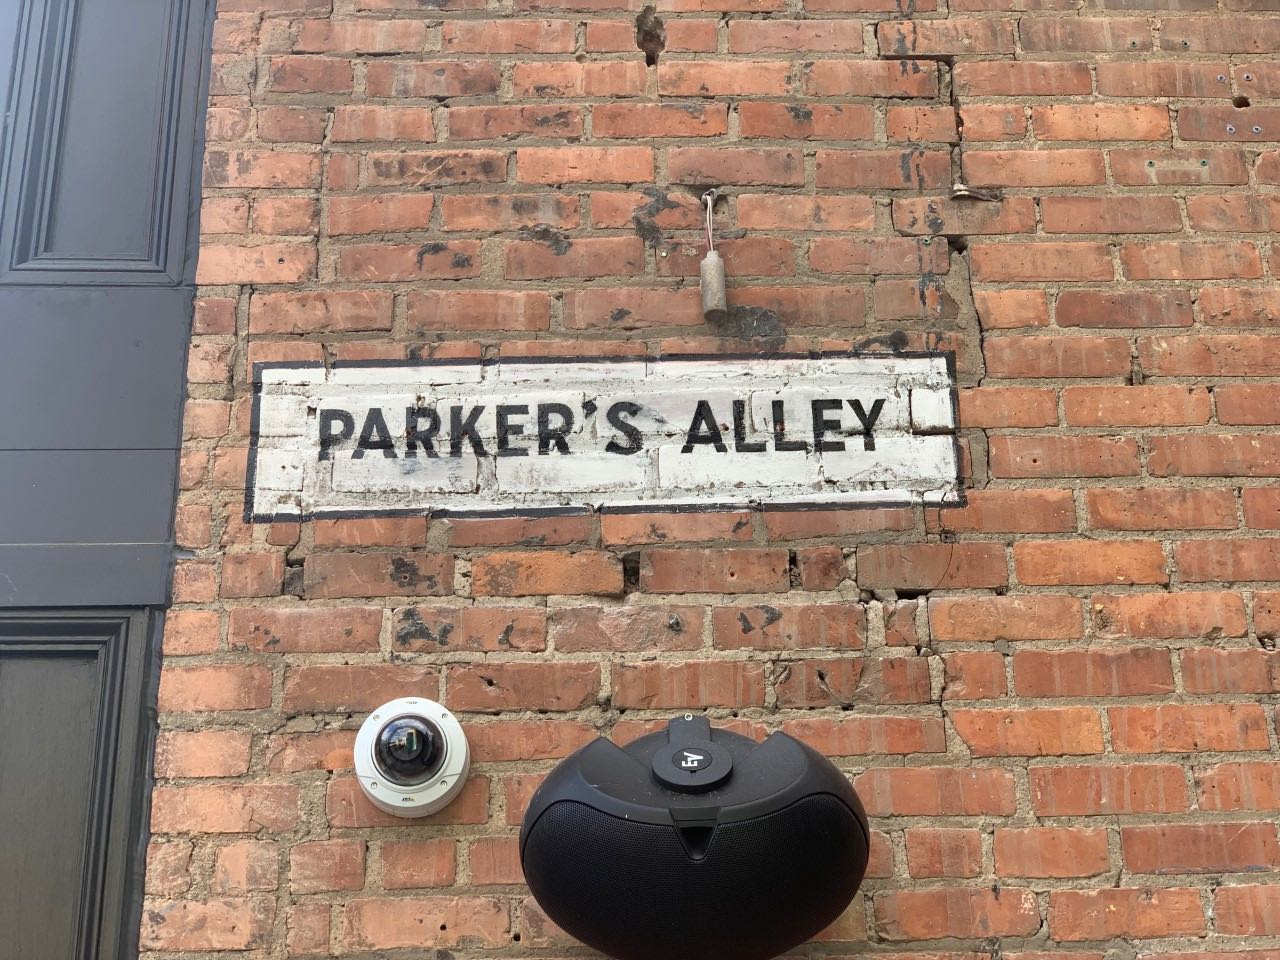 Parker's Alley